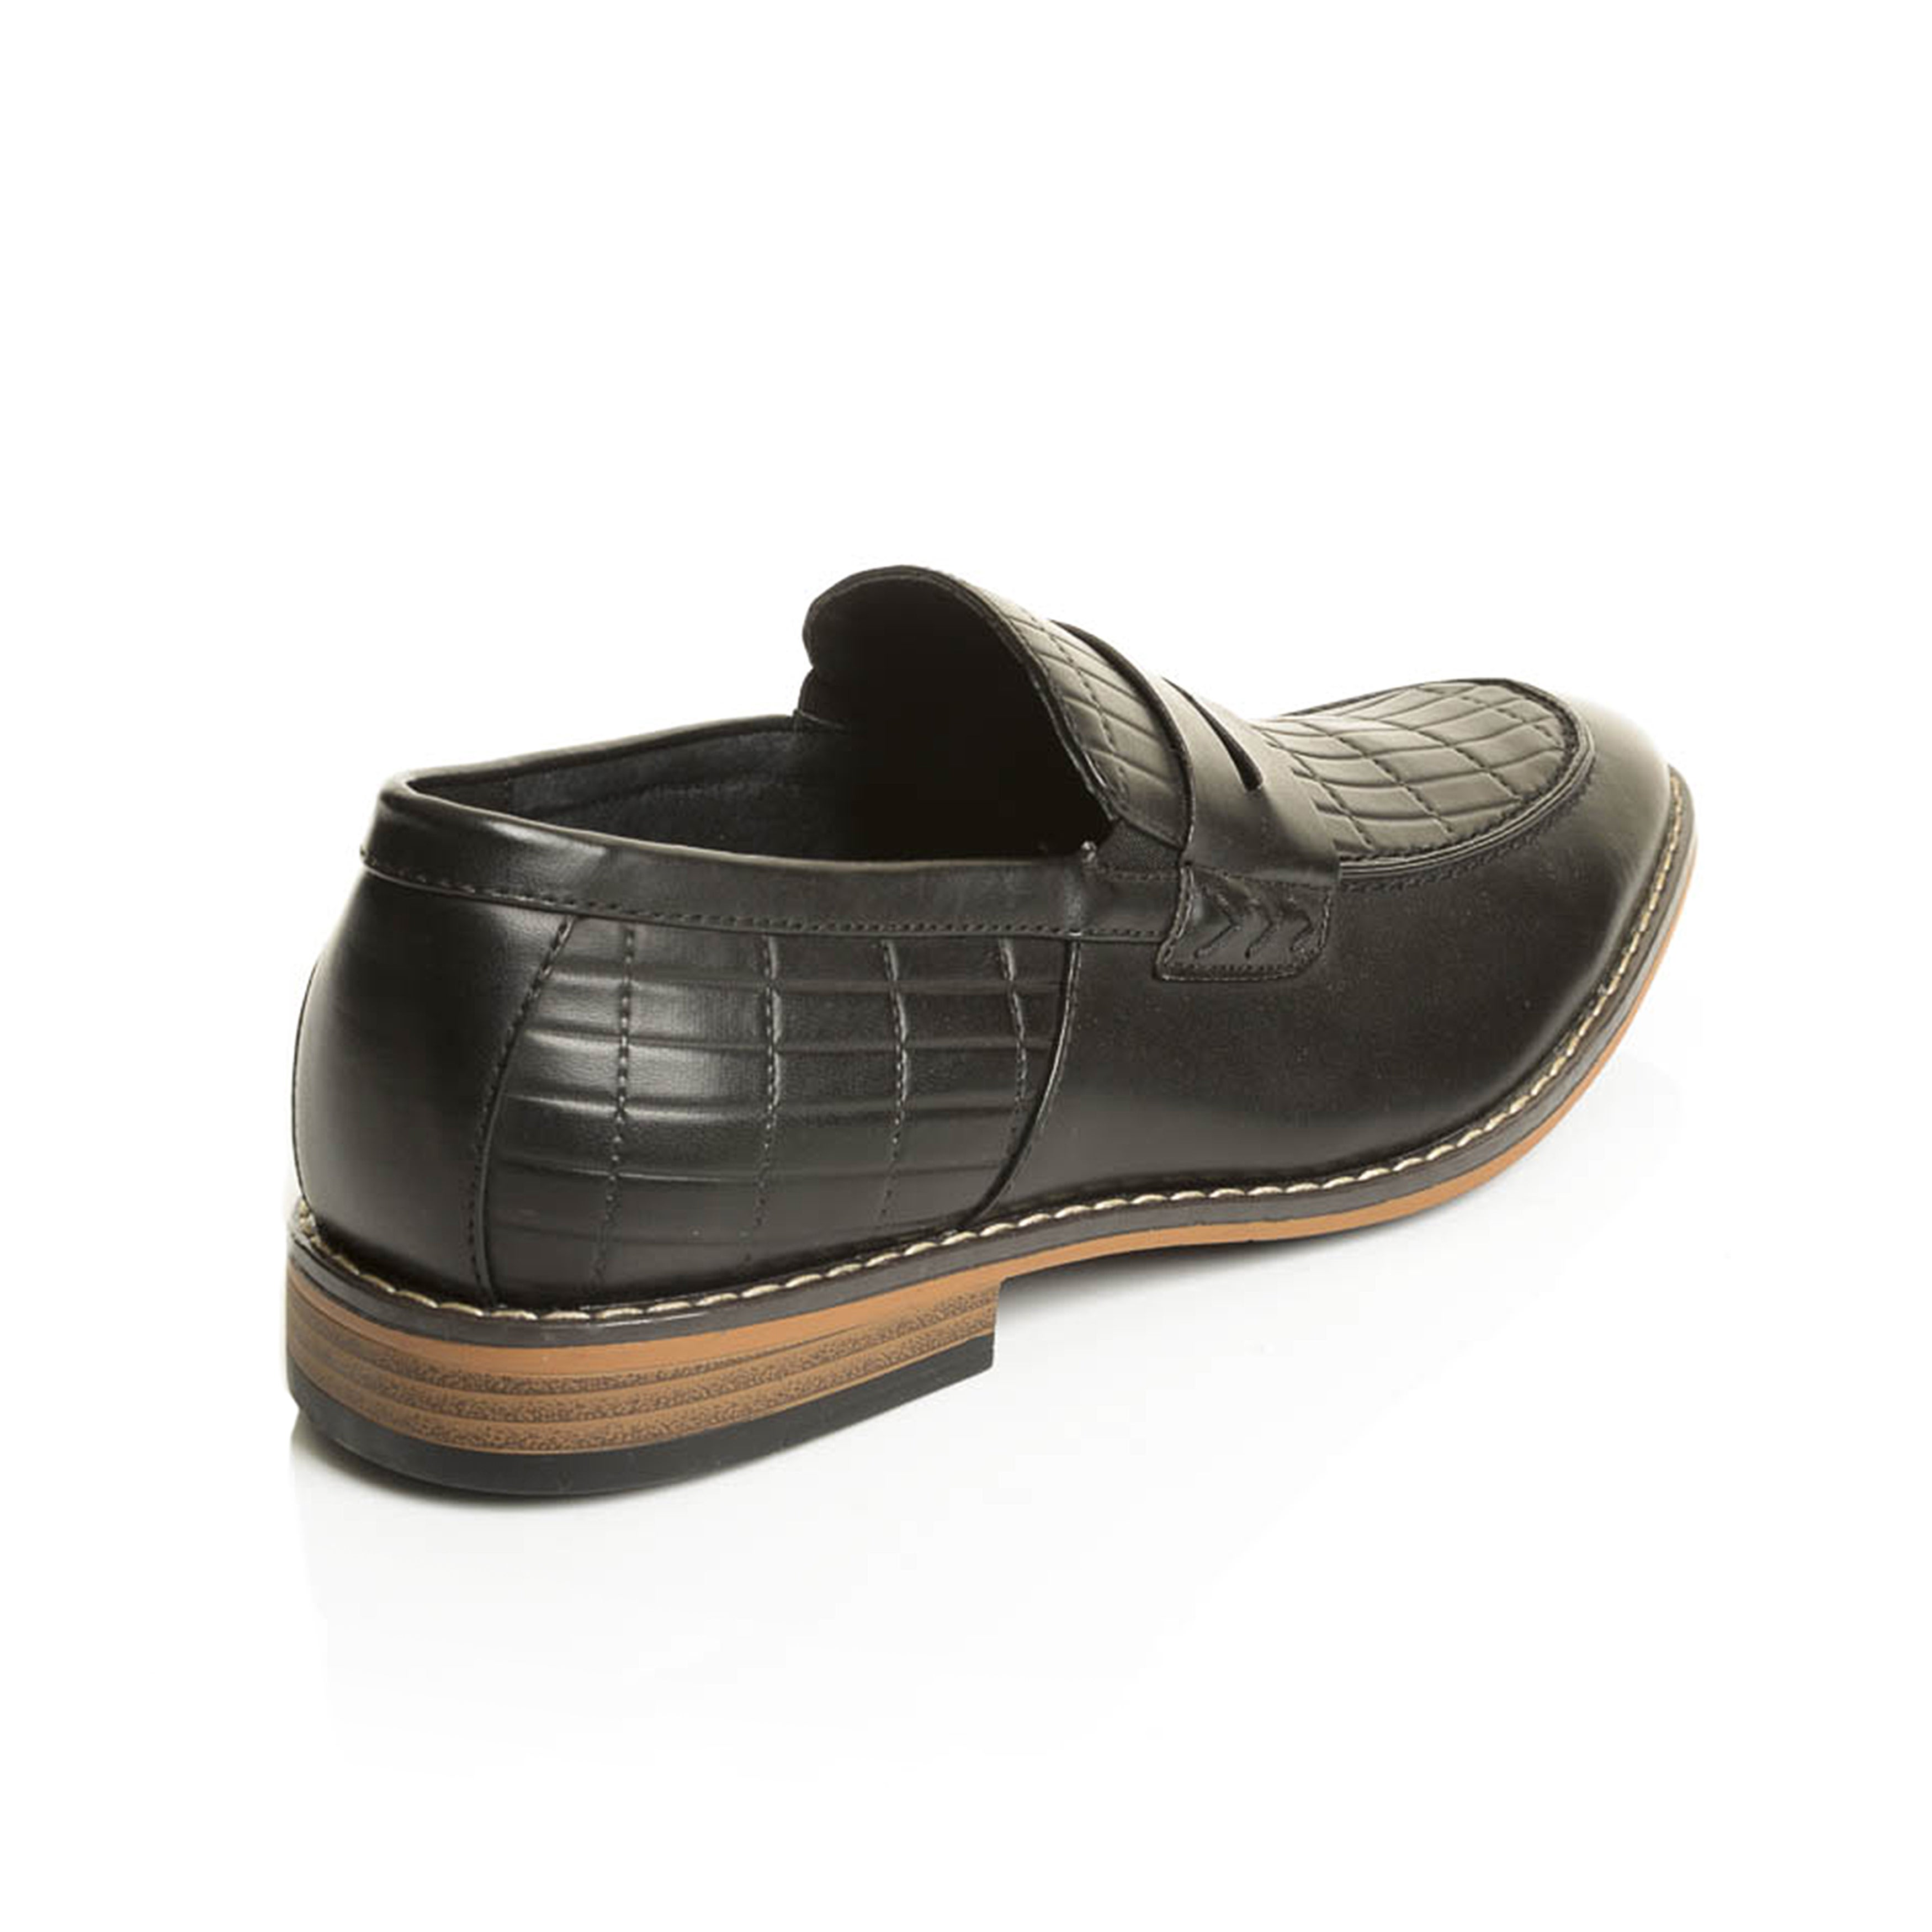 3db3fa1be5f Shop henry ferrera collection mens slip on penny dress loafers free  shipping today jpg 3500x3500 Mens